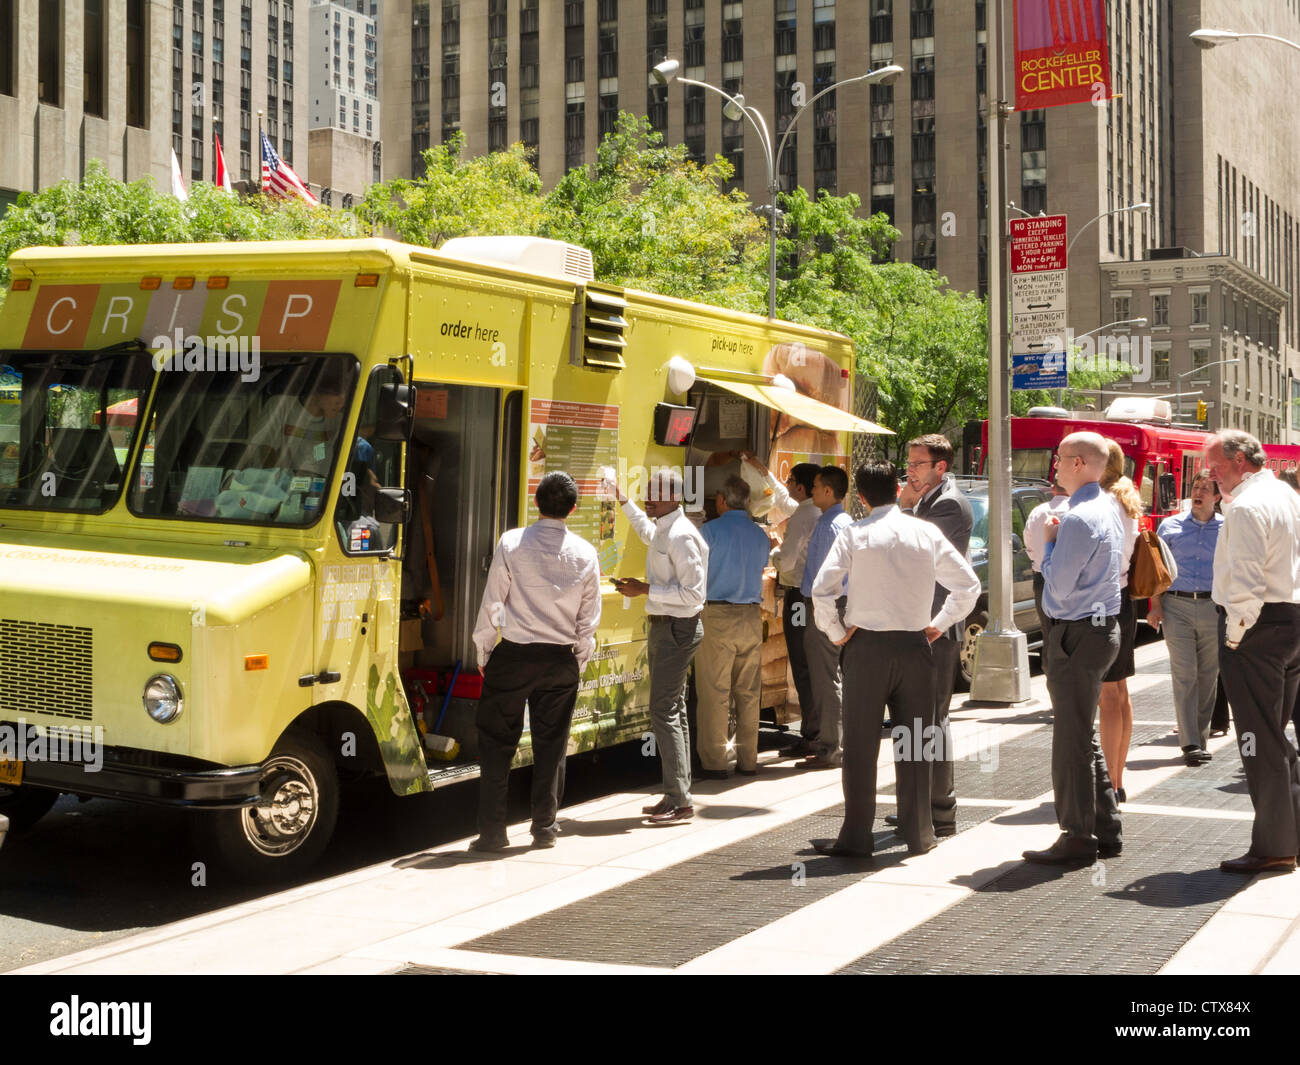 Gourmet Food Truck Nyc Stock Photo 49749642 Alamy